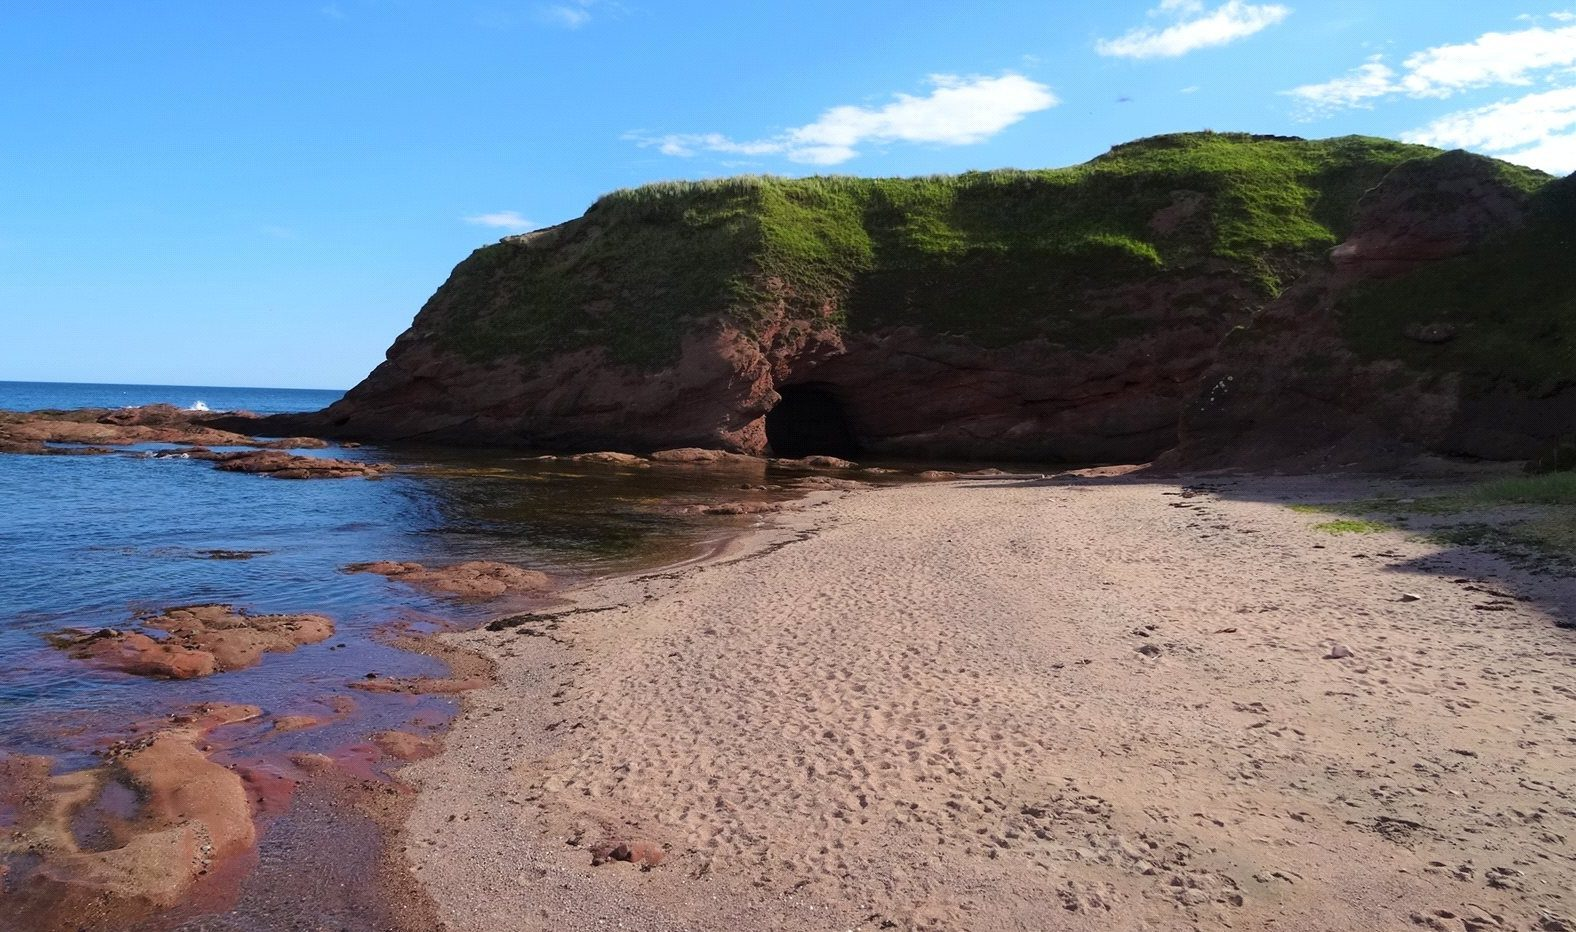 The beach comes with caves, wildlife and a farmhouse, which needs an upgrade. Image courtesy of Galbraith